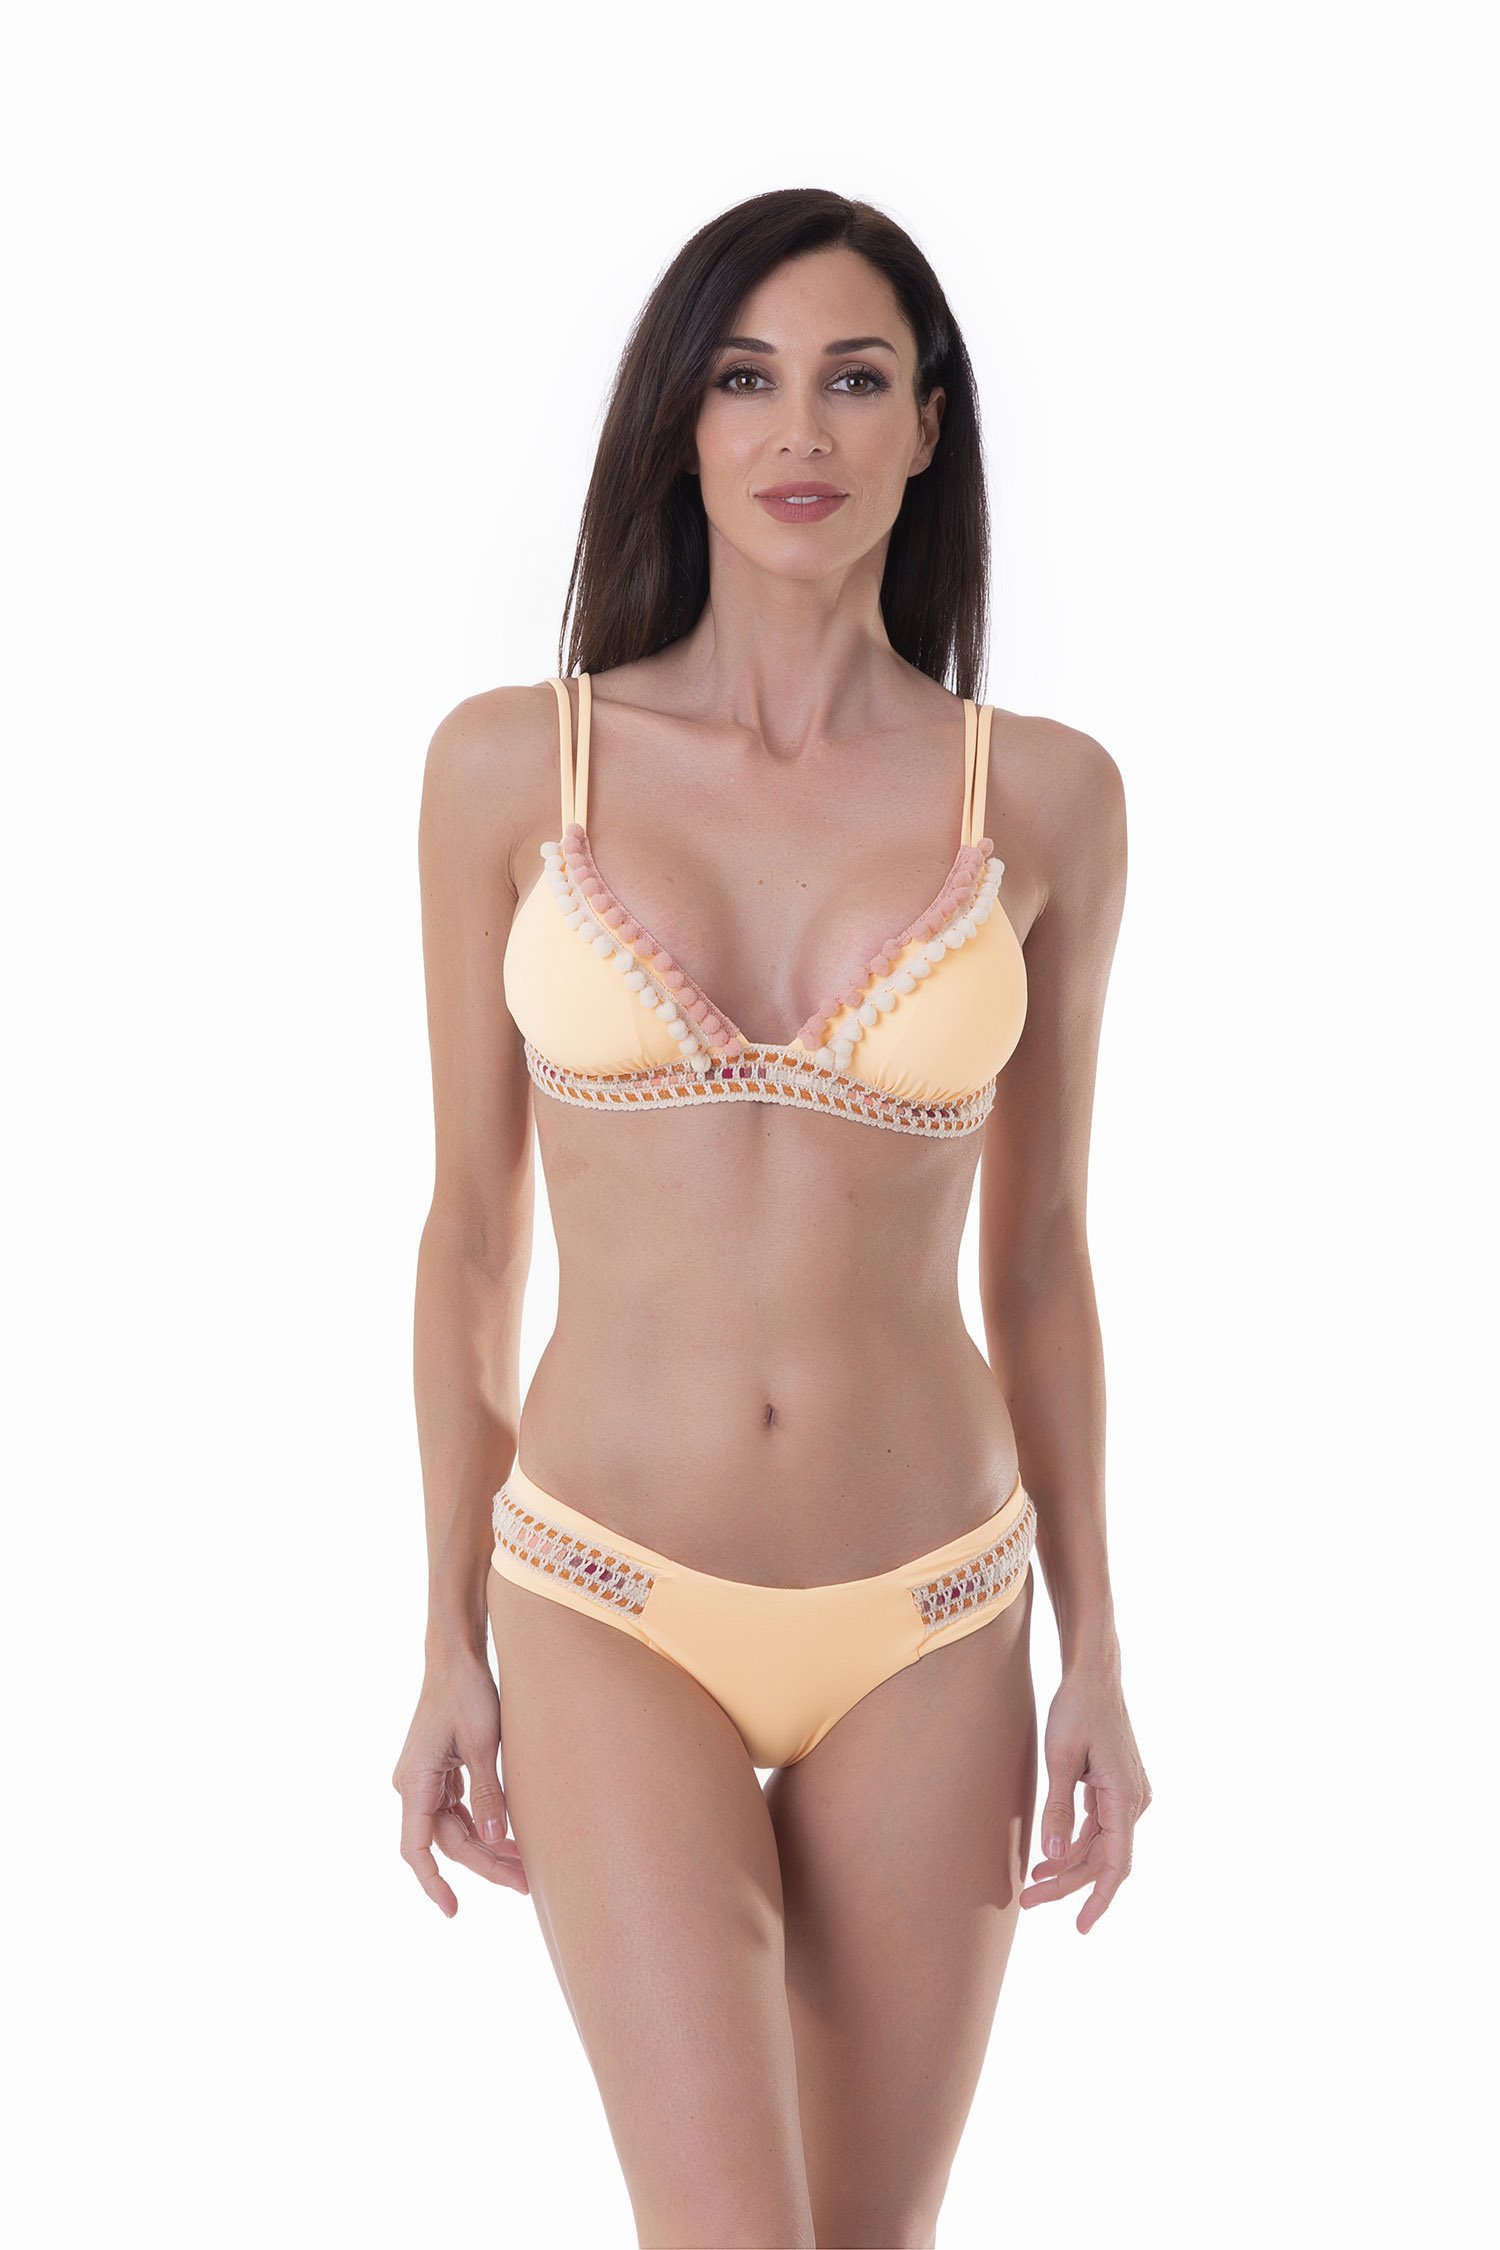 LUXE PLAIN COLOUR TRIANGLE BIKINI WITH TRIMMING BELOW THE BUST - Pesco